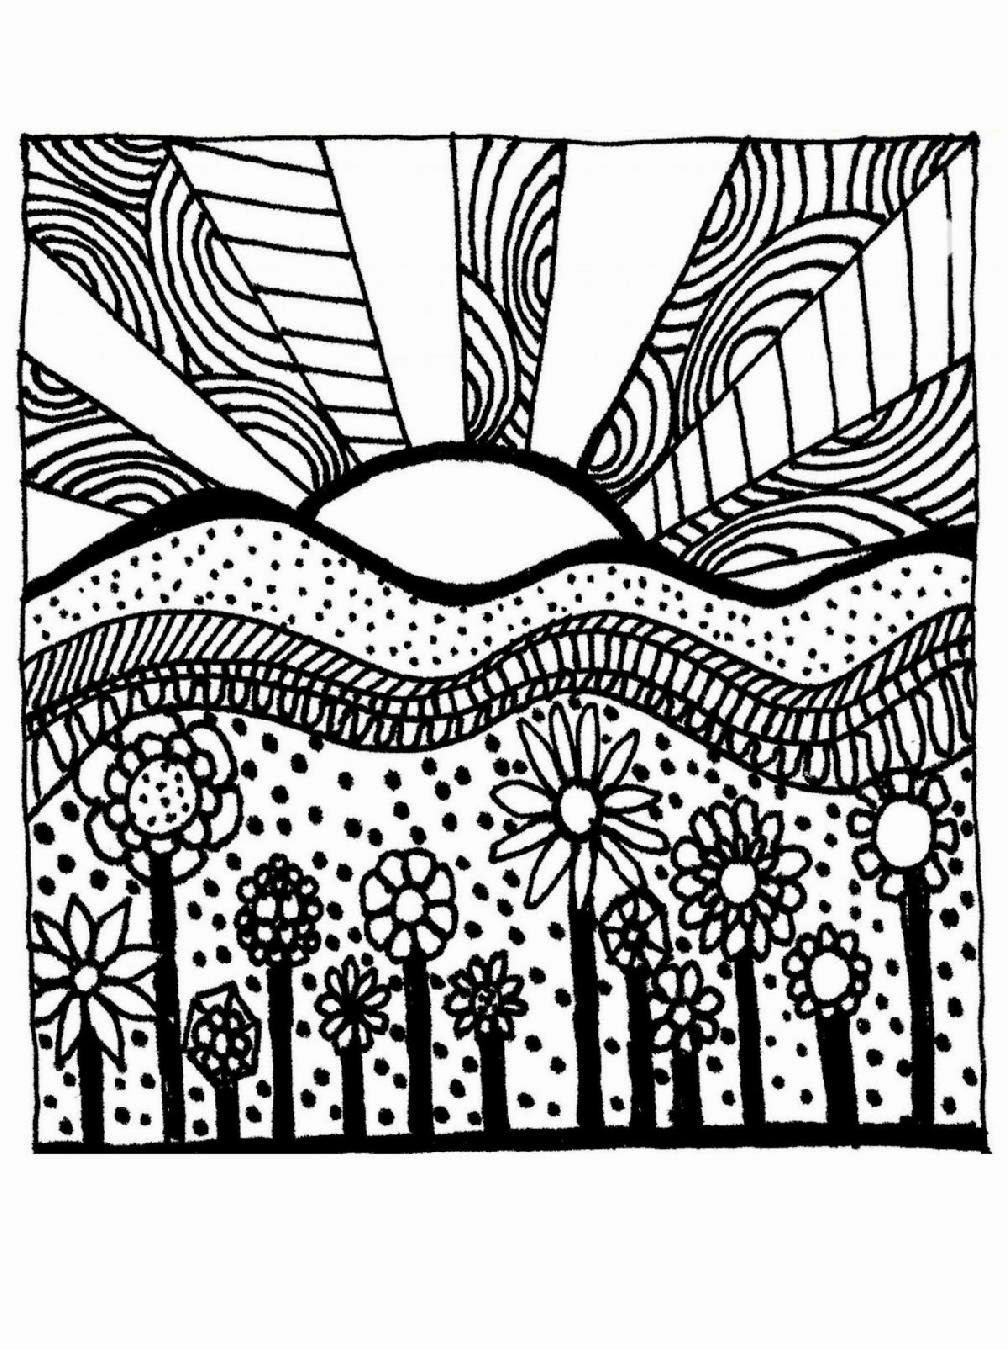 Printable Adult Coloring Books  Free Printable Abstract Coloring Pages For Adults Free